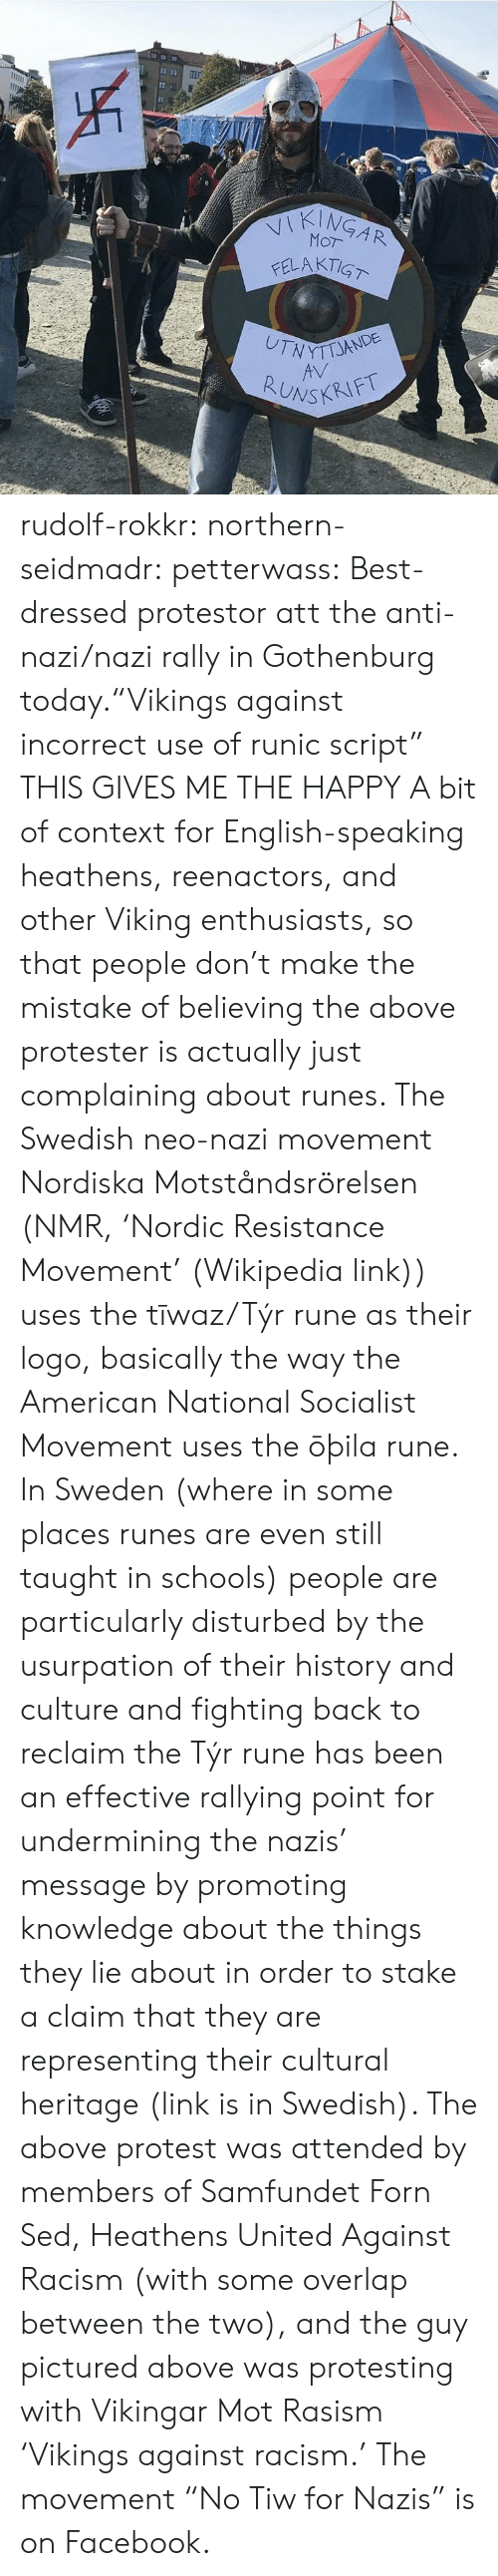 """Protester: JE  INGAR  WYTTJANDE  ONSKRIFT rudolf-rokkr:  northern-seidmadr: petterwass: Best-dressed protestor att the anti-nazi/nazi rally in Gothenburg today.""""Vikings against incorrect use of runic script""""  THIS GIVES ME THE HAPPY  A bit of context for English-speaking heathens, reenactors, and other Viking enthusiasts, so that people don't make the mistake of believing the above protester is actually just complaining about runes. The Swedish neo-nazi movement Nordiska Motståndsrörelsen (NMR, 'Nordic Resistance Movement' (Wikipedia link)) uses the tīwaz/Týr rune as their logo, basically the way the American National Socialist Movement uses the ōþila rune. In Sweden (where in some places runes are even still taught in schools) people are particularly disturbed by the usurpation of their history and culture and fighting back to reclaim the Týr rune has been an effective rallying point for undermining the nazis' message by promoting knowledge about the things they lie about in order to stake a claim that they are representing their cultural heritage (link is in Swedish). The above protest was attended by members of Samfundet Forn Sed, Heathens United Against Racism (with some overlap between the two), and the guy pictured above was protesting with Vikingar Mot Rasism 'Vikings against racism.' The movement """"No Tiw for Nazis"""" is on Facebook."""